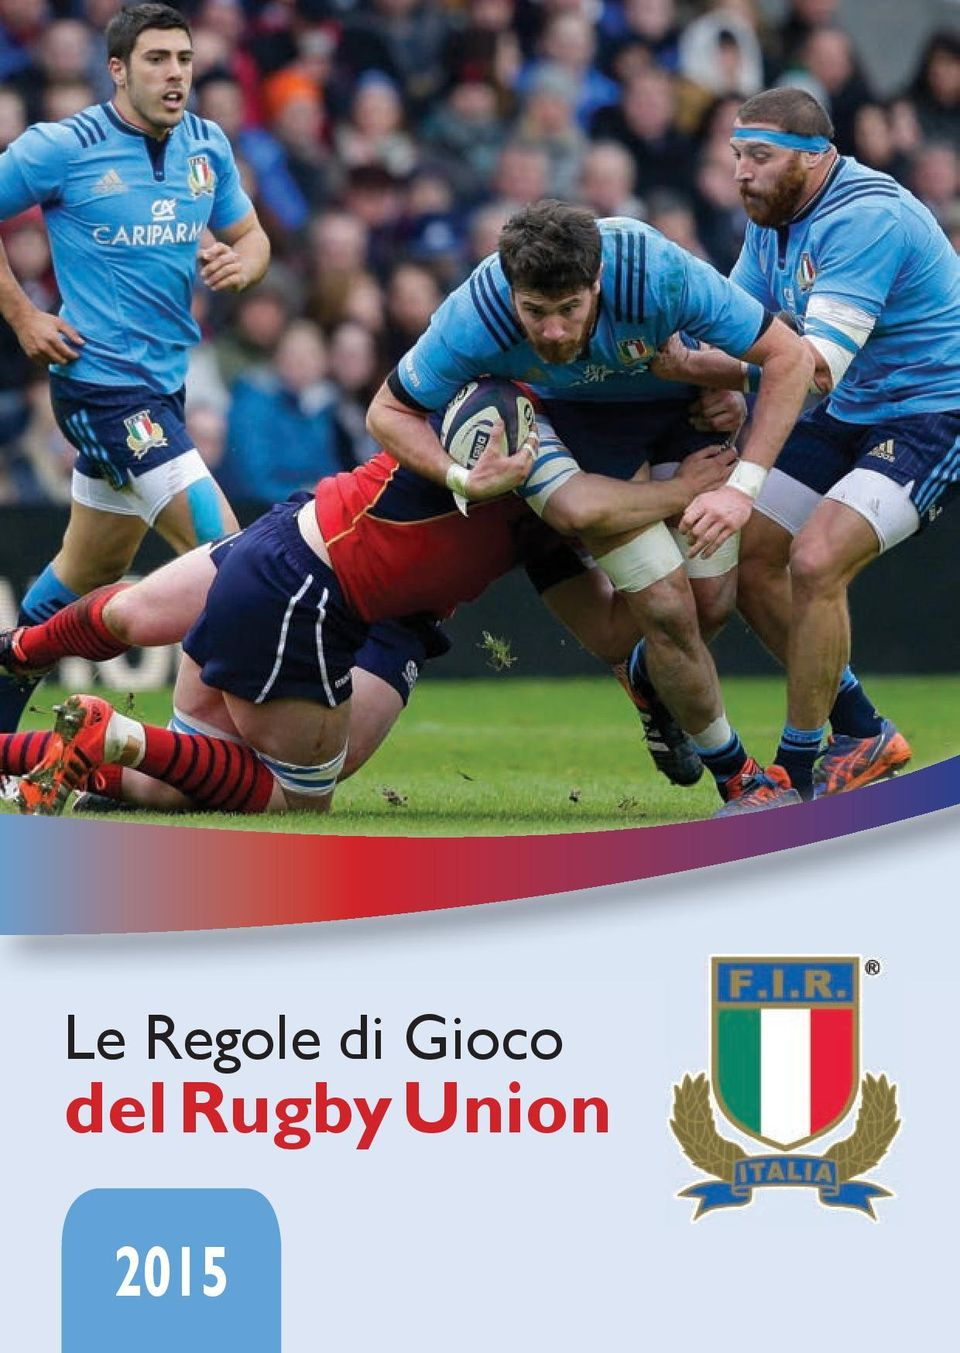 del Rugby